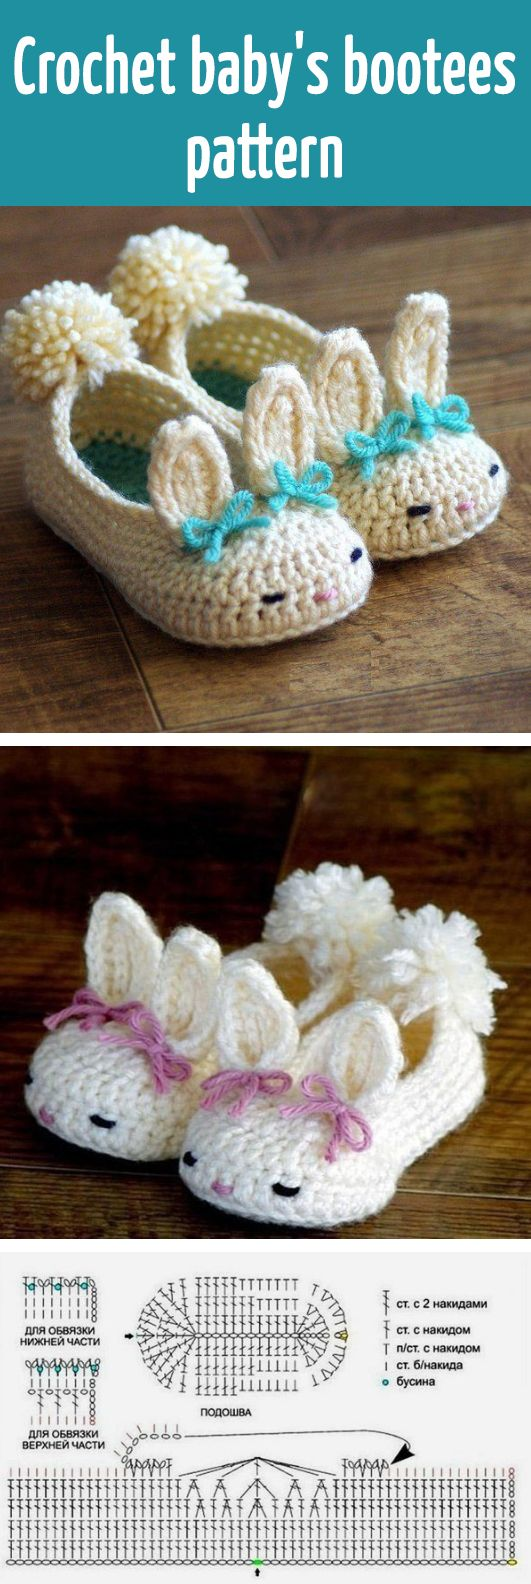 Crochet babys bootees pattern